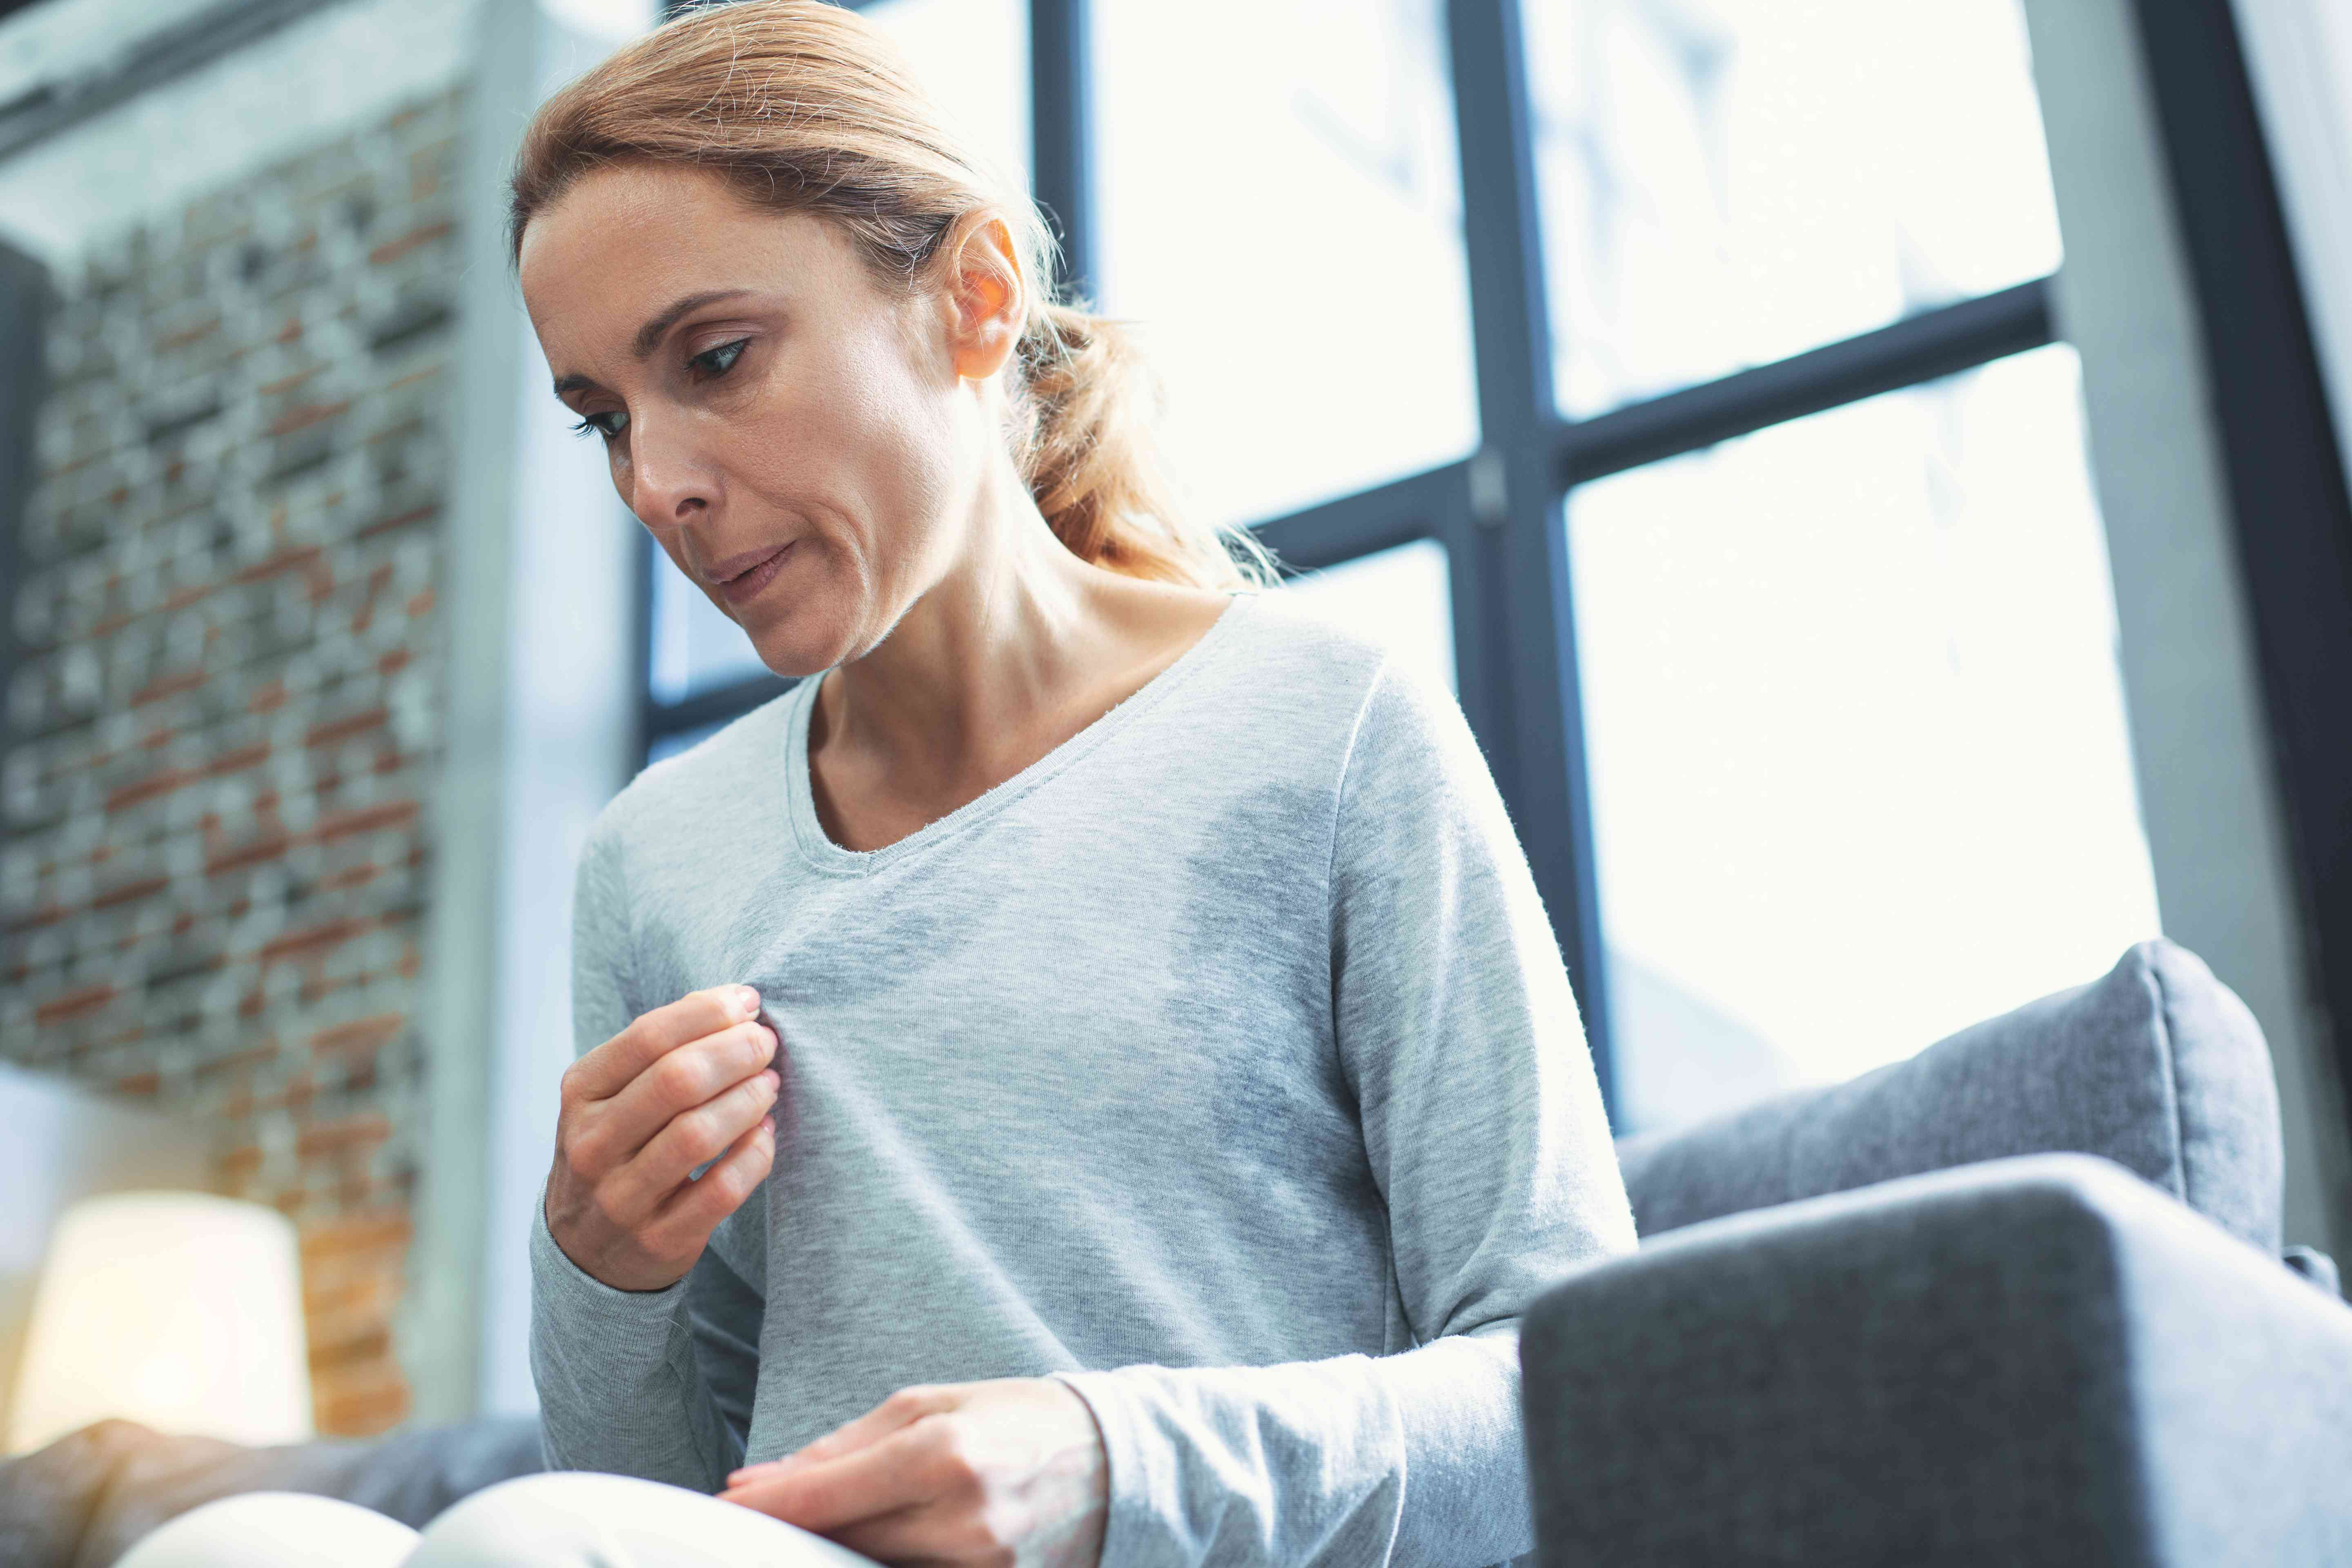 Exhausted mature woman entering menopause